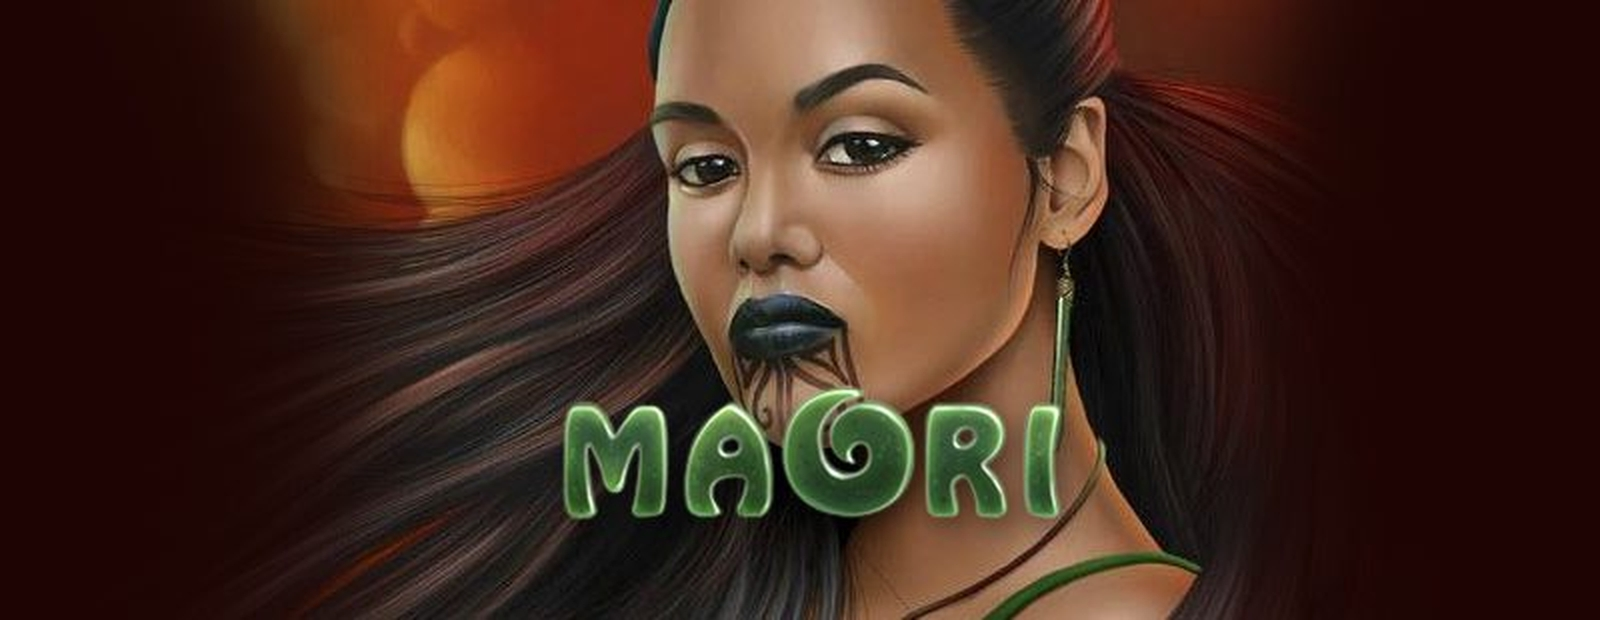 The Maori Online Slot Demo Game by Endorphina